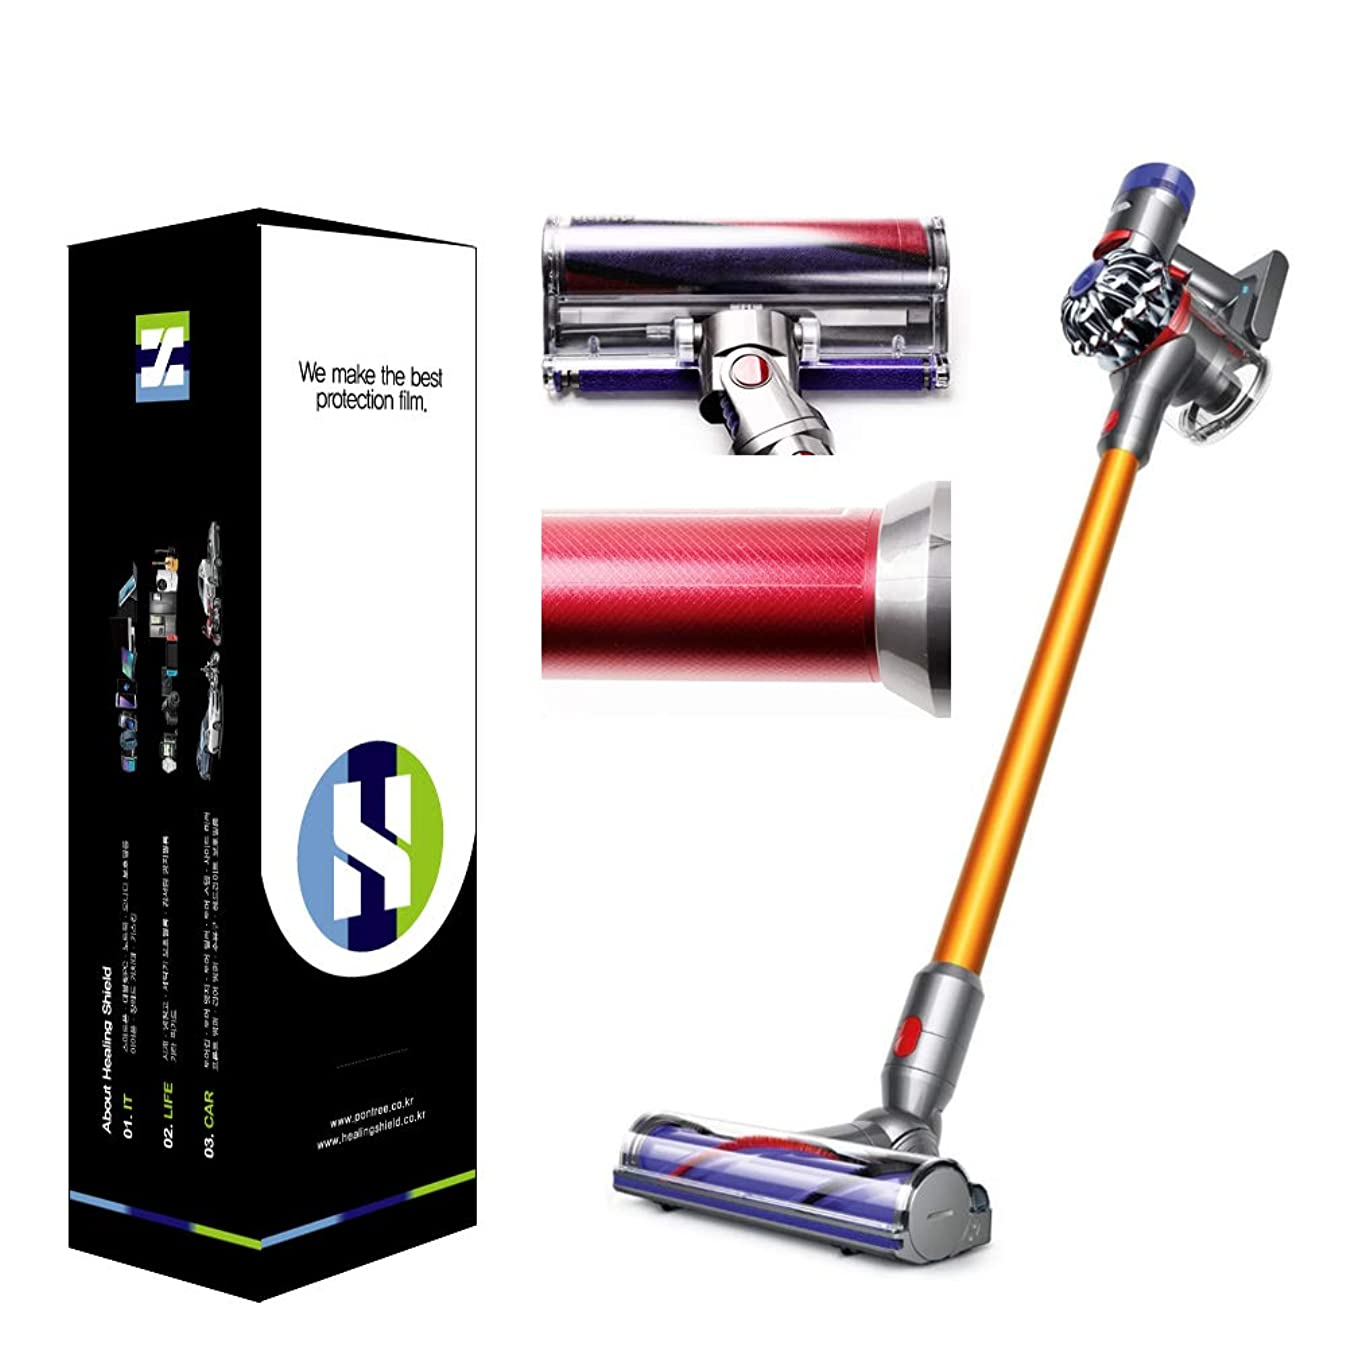 Healing Shield, Compatible with Dyson Supersonic Hair Dryer Virtual Skin Matte Protective Film Set (Supersonic Hair Dryer / 1 Pack)